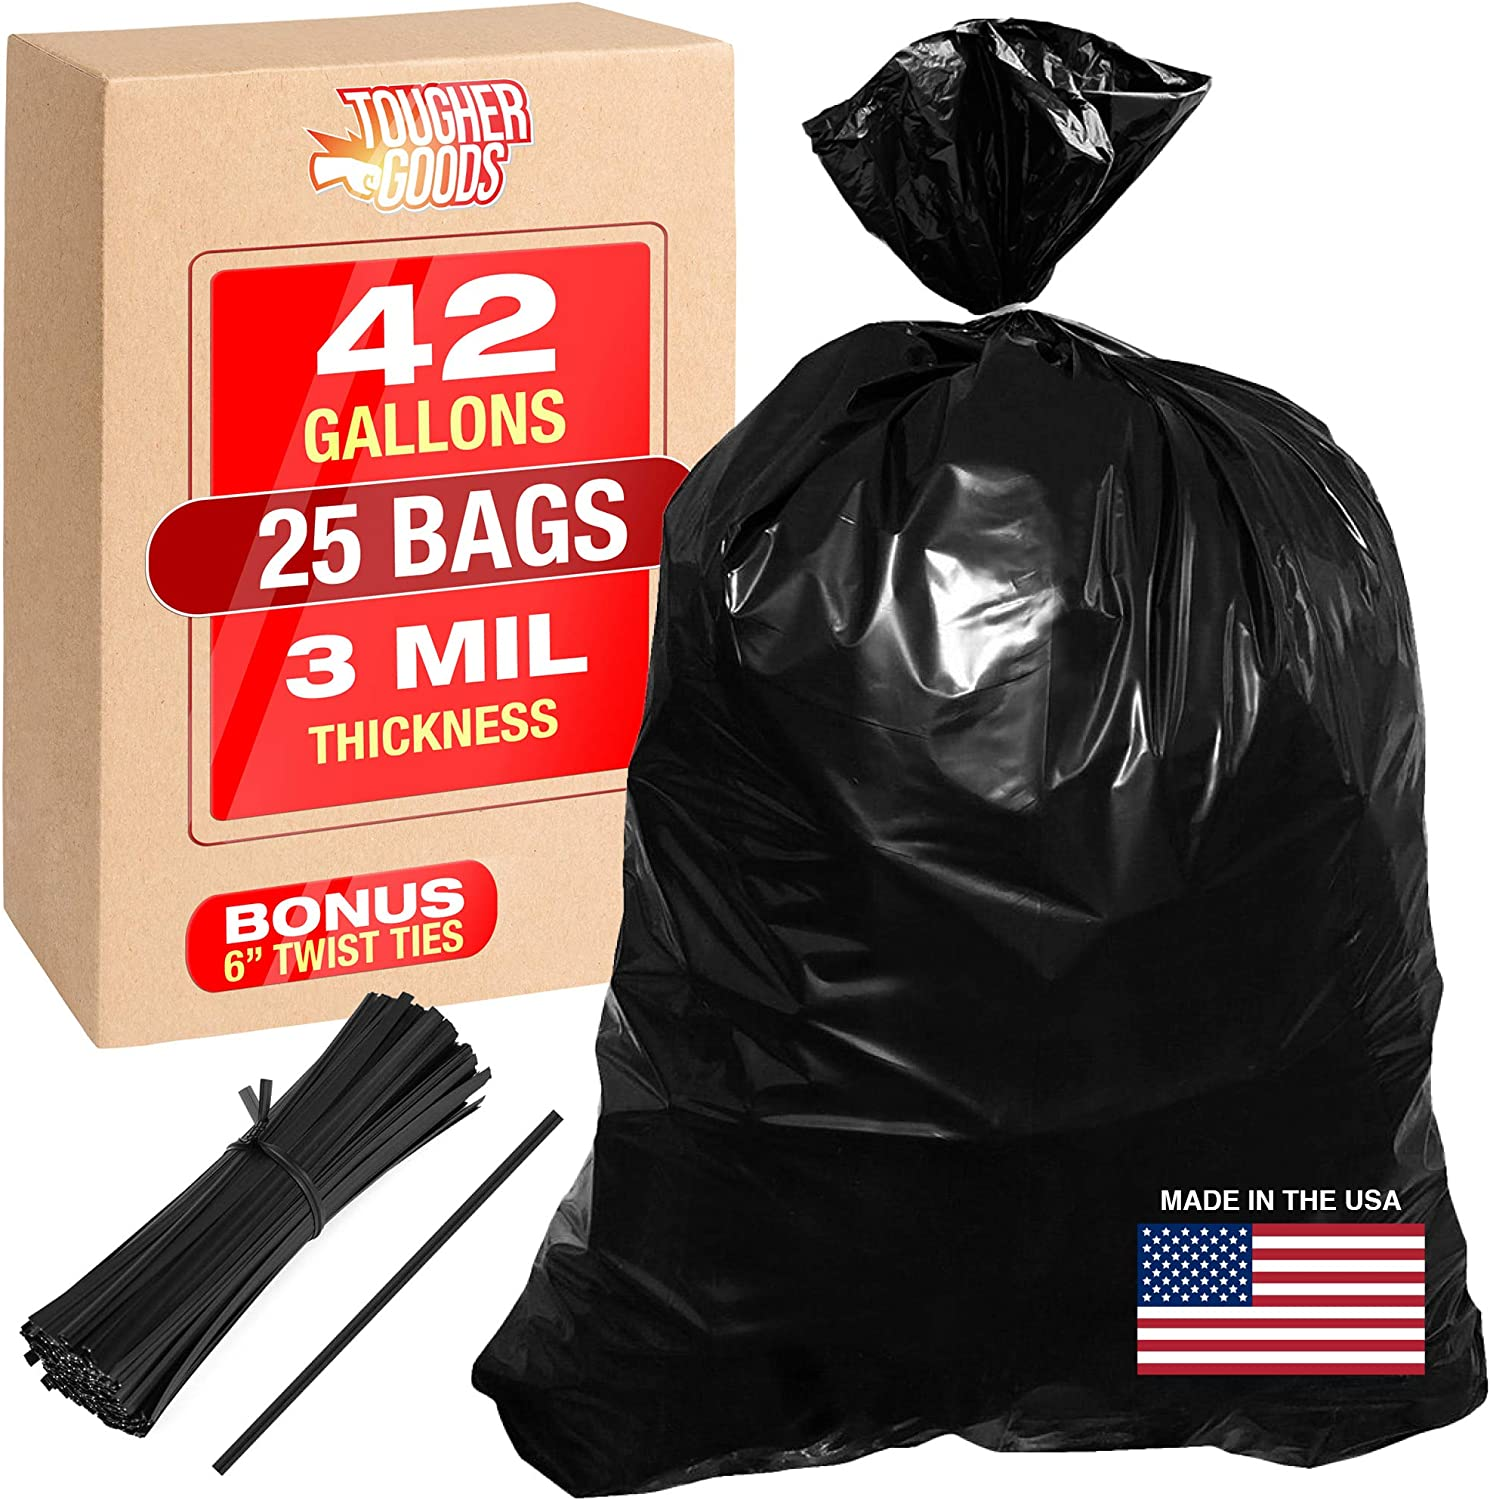 Contractor Bags 42 gallon 3 Mil Trash Bags 25PK Heavy Duty Contractors Grade Black Construction Garbage Bag With Ties 33x48 Industrial Strength Contractor Clean Up Large Trashbags - by Tougher Goods